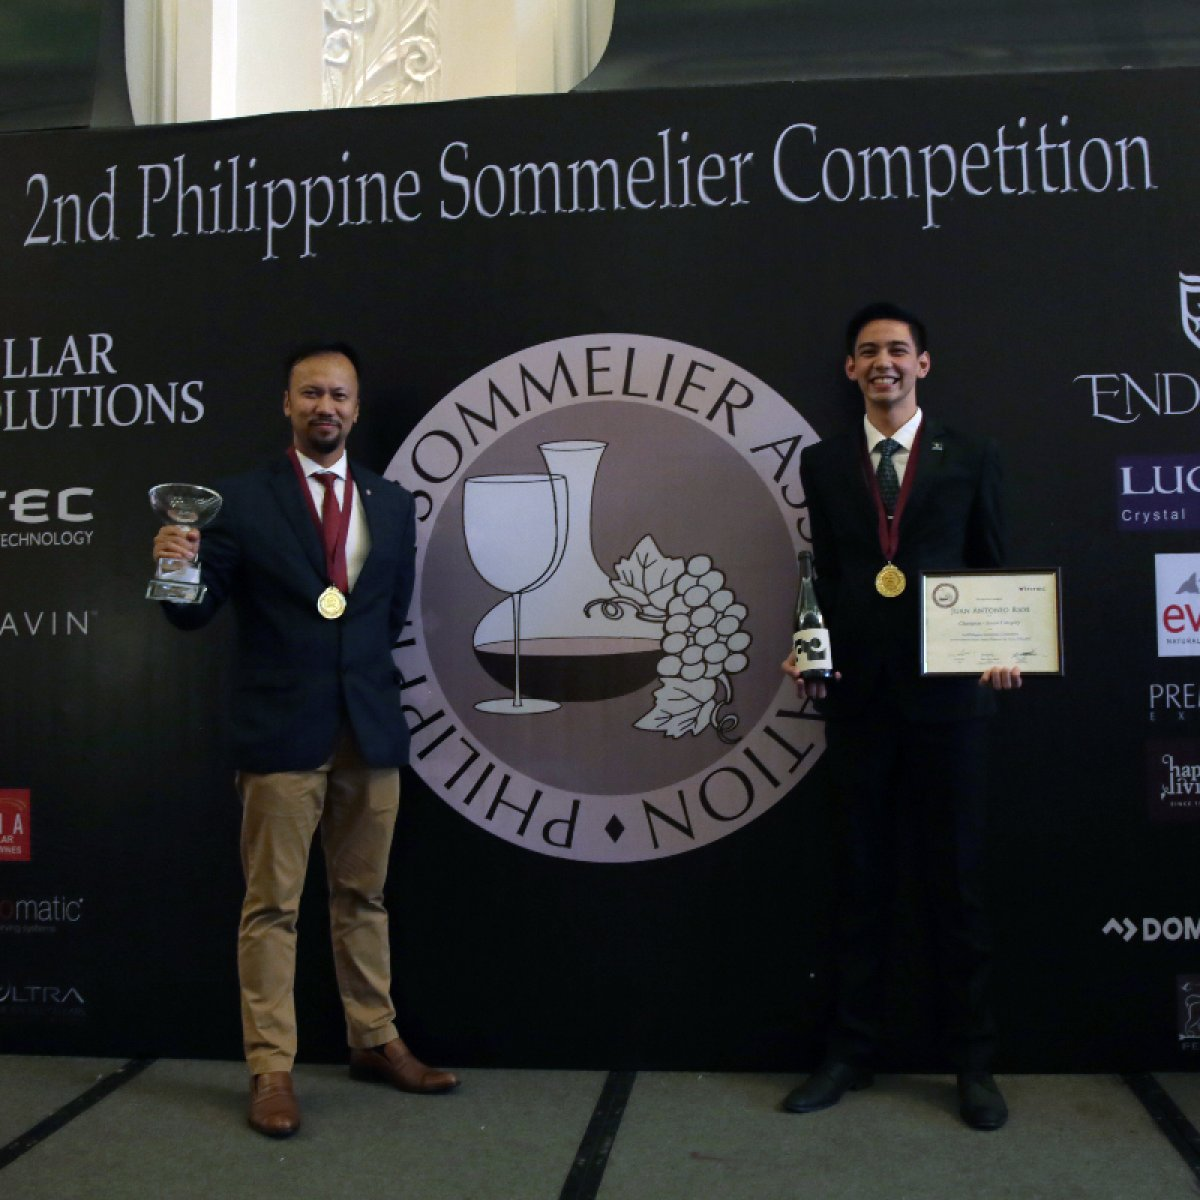 A test of grace and good taste: Vatel Manila's triumph at the 2nd Philippine Sommelier Competition